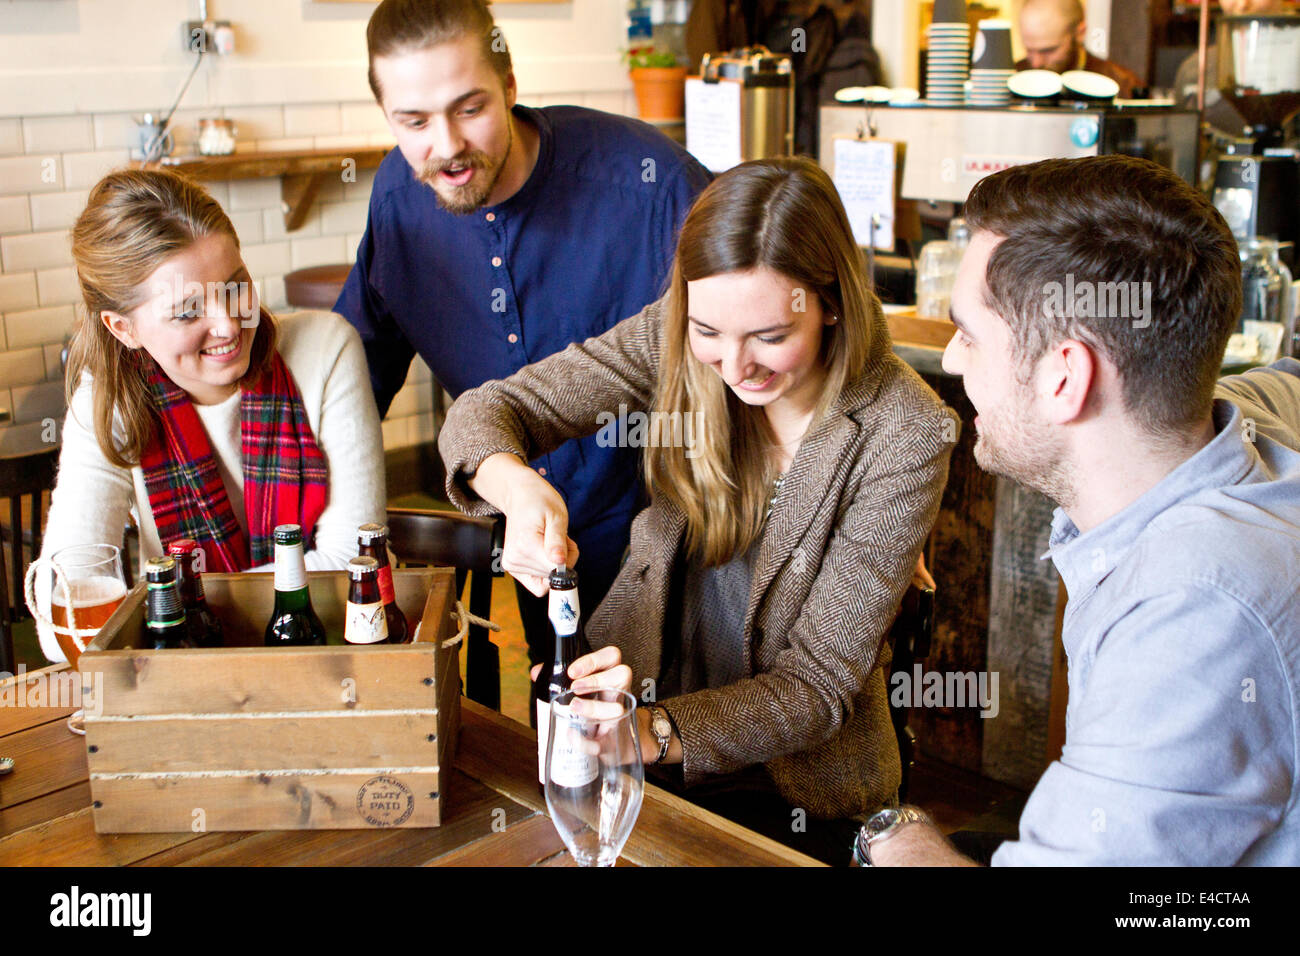 Young woman opening bottle of beer, friends are watching, Dorset, Bournemouth, England Stock Photo